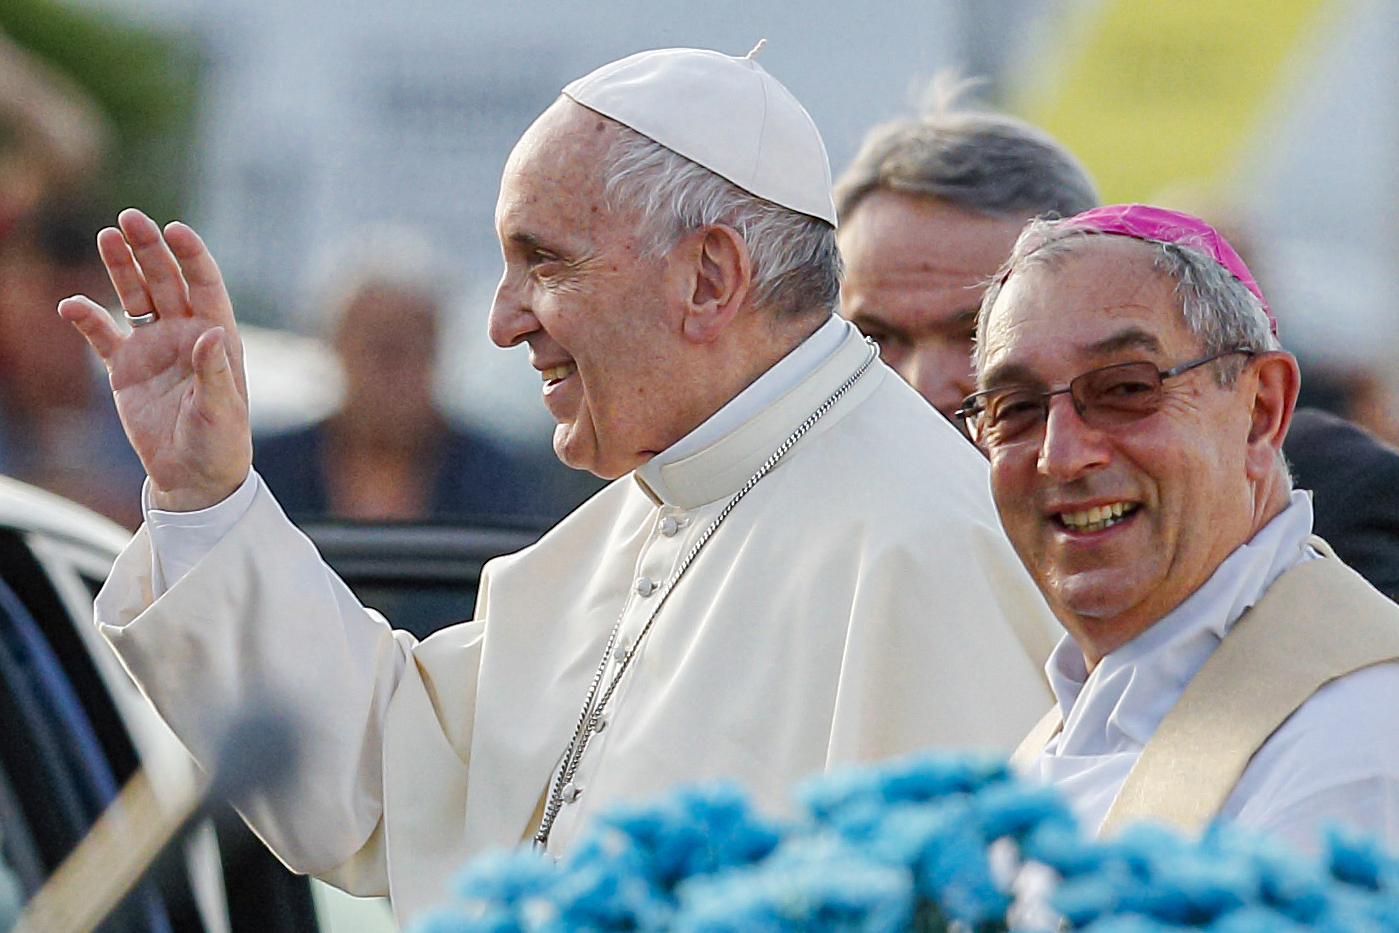 Pope Francis and Cardinal Angelo De Donatis, papal vicar for the Diocese of Rome, are pictured after a Mass in Ostia, a suburb of Rome, in this 3 June 2018, file photo. Cardinal De Donatis has asked every pastor in the Diocese of Rome to form a team for neighborhood missionary outreach. Photo: Paul Haring/CNS.